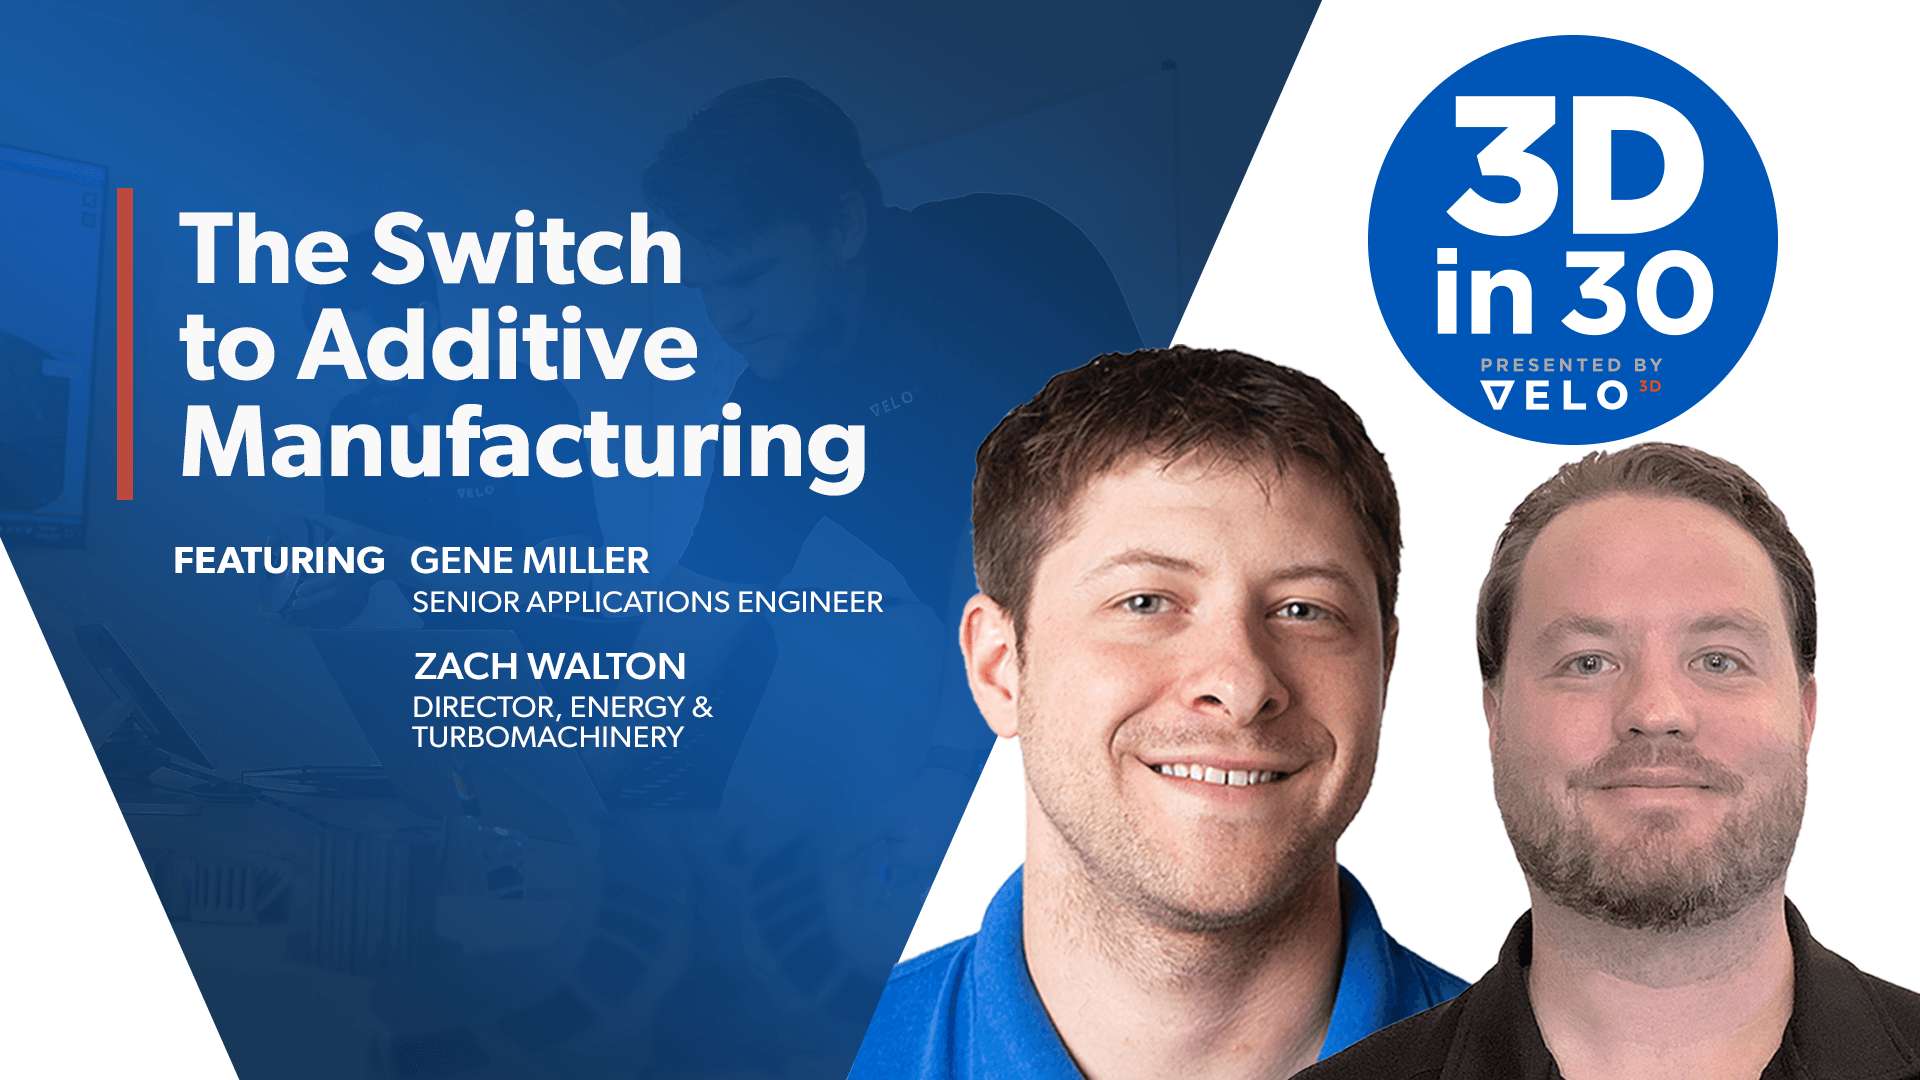 The Switch to Additive Manufacturing